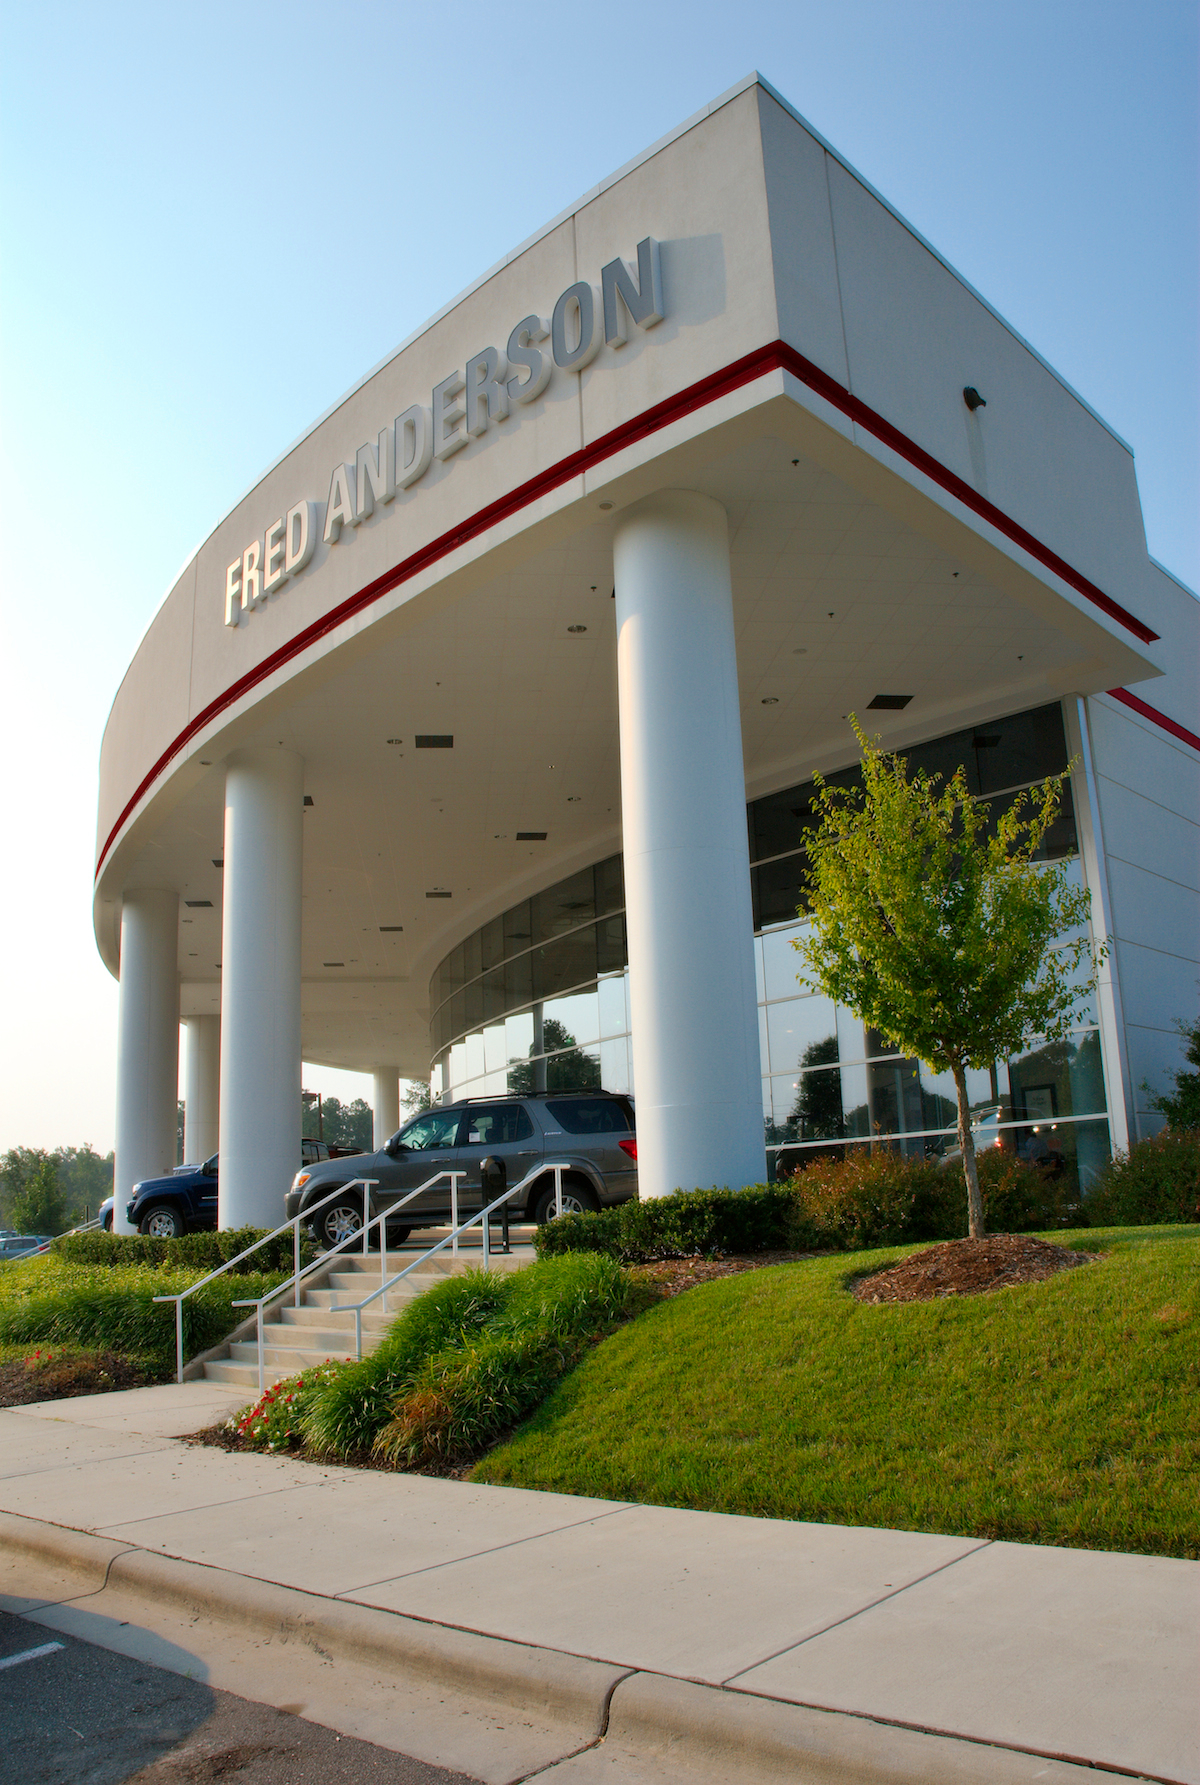 Fred Anderson Toyota image 5